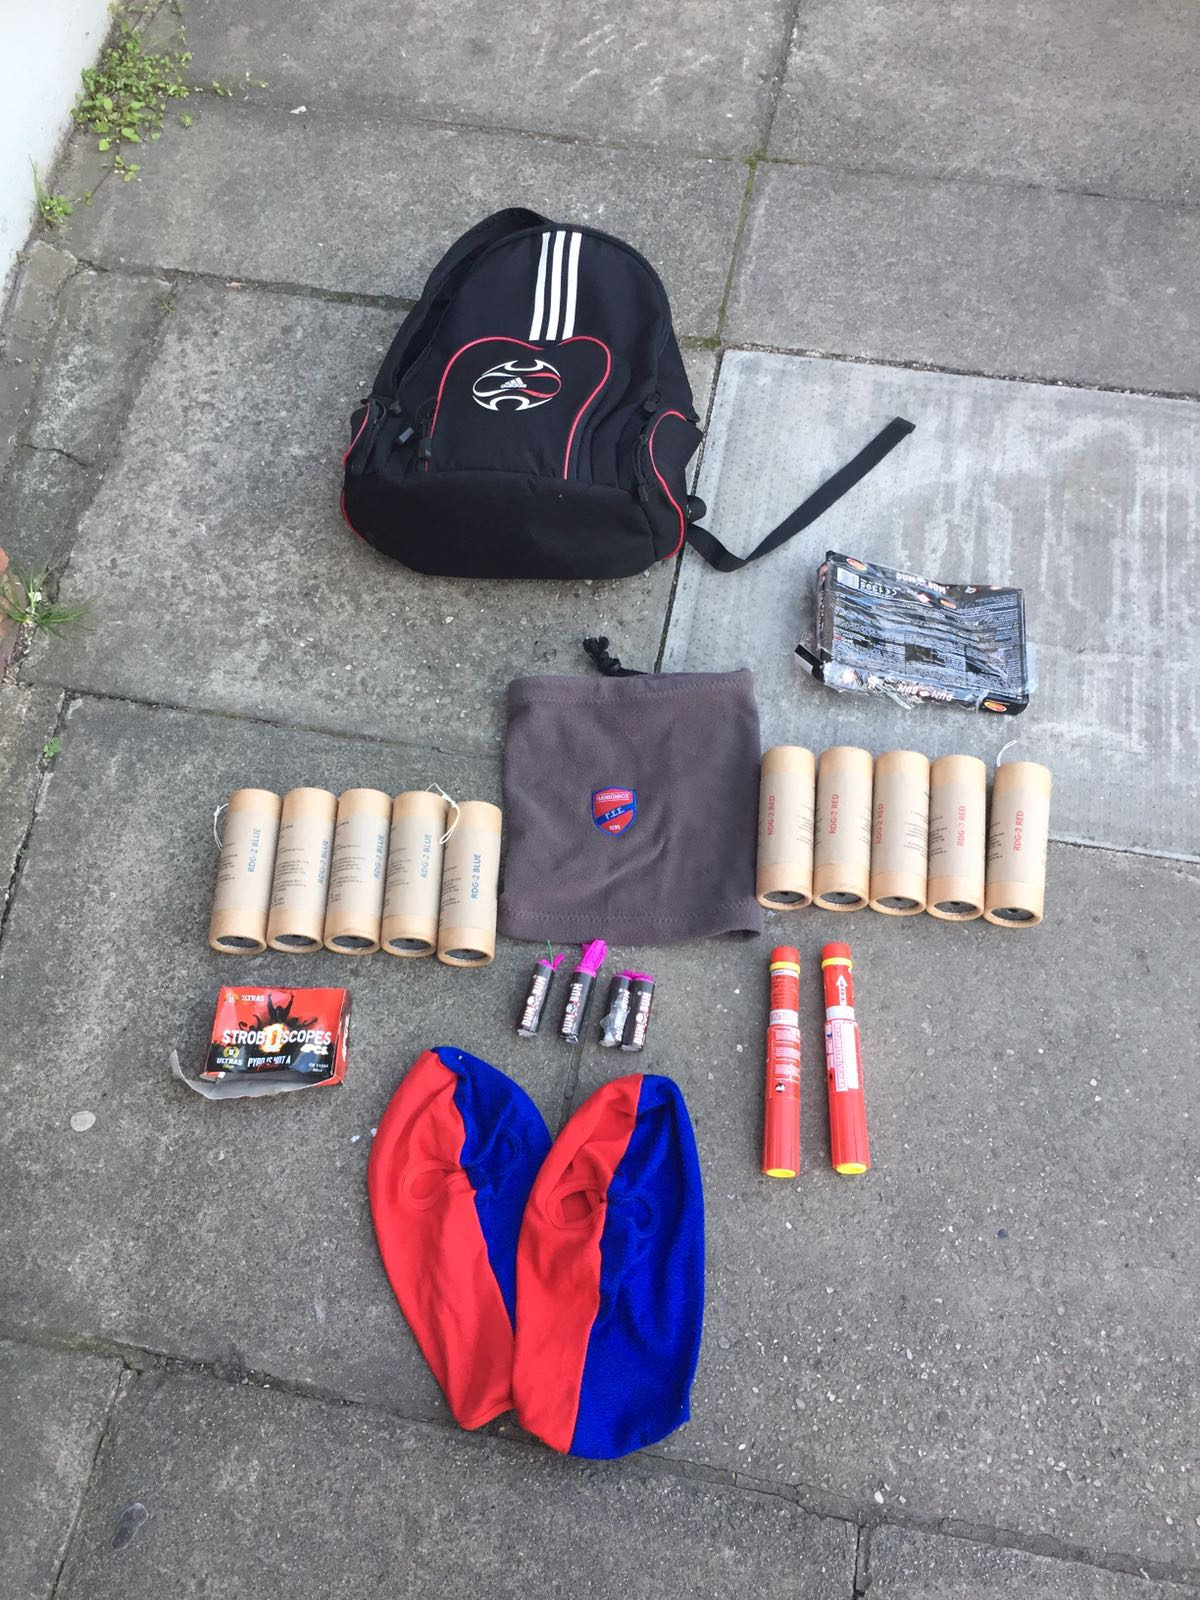 Some Of The Recovered Pyrotechnics